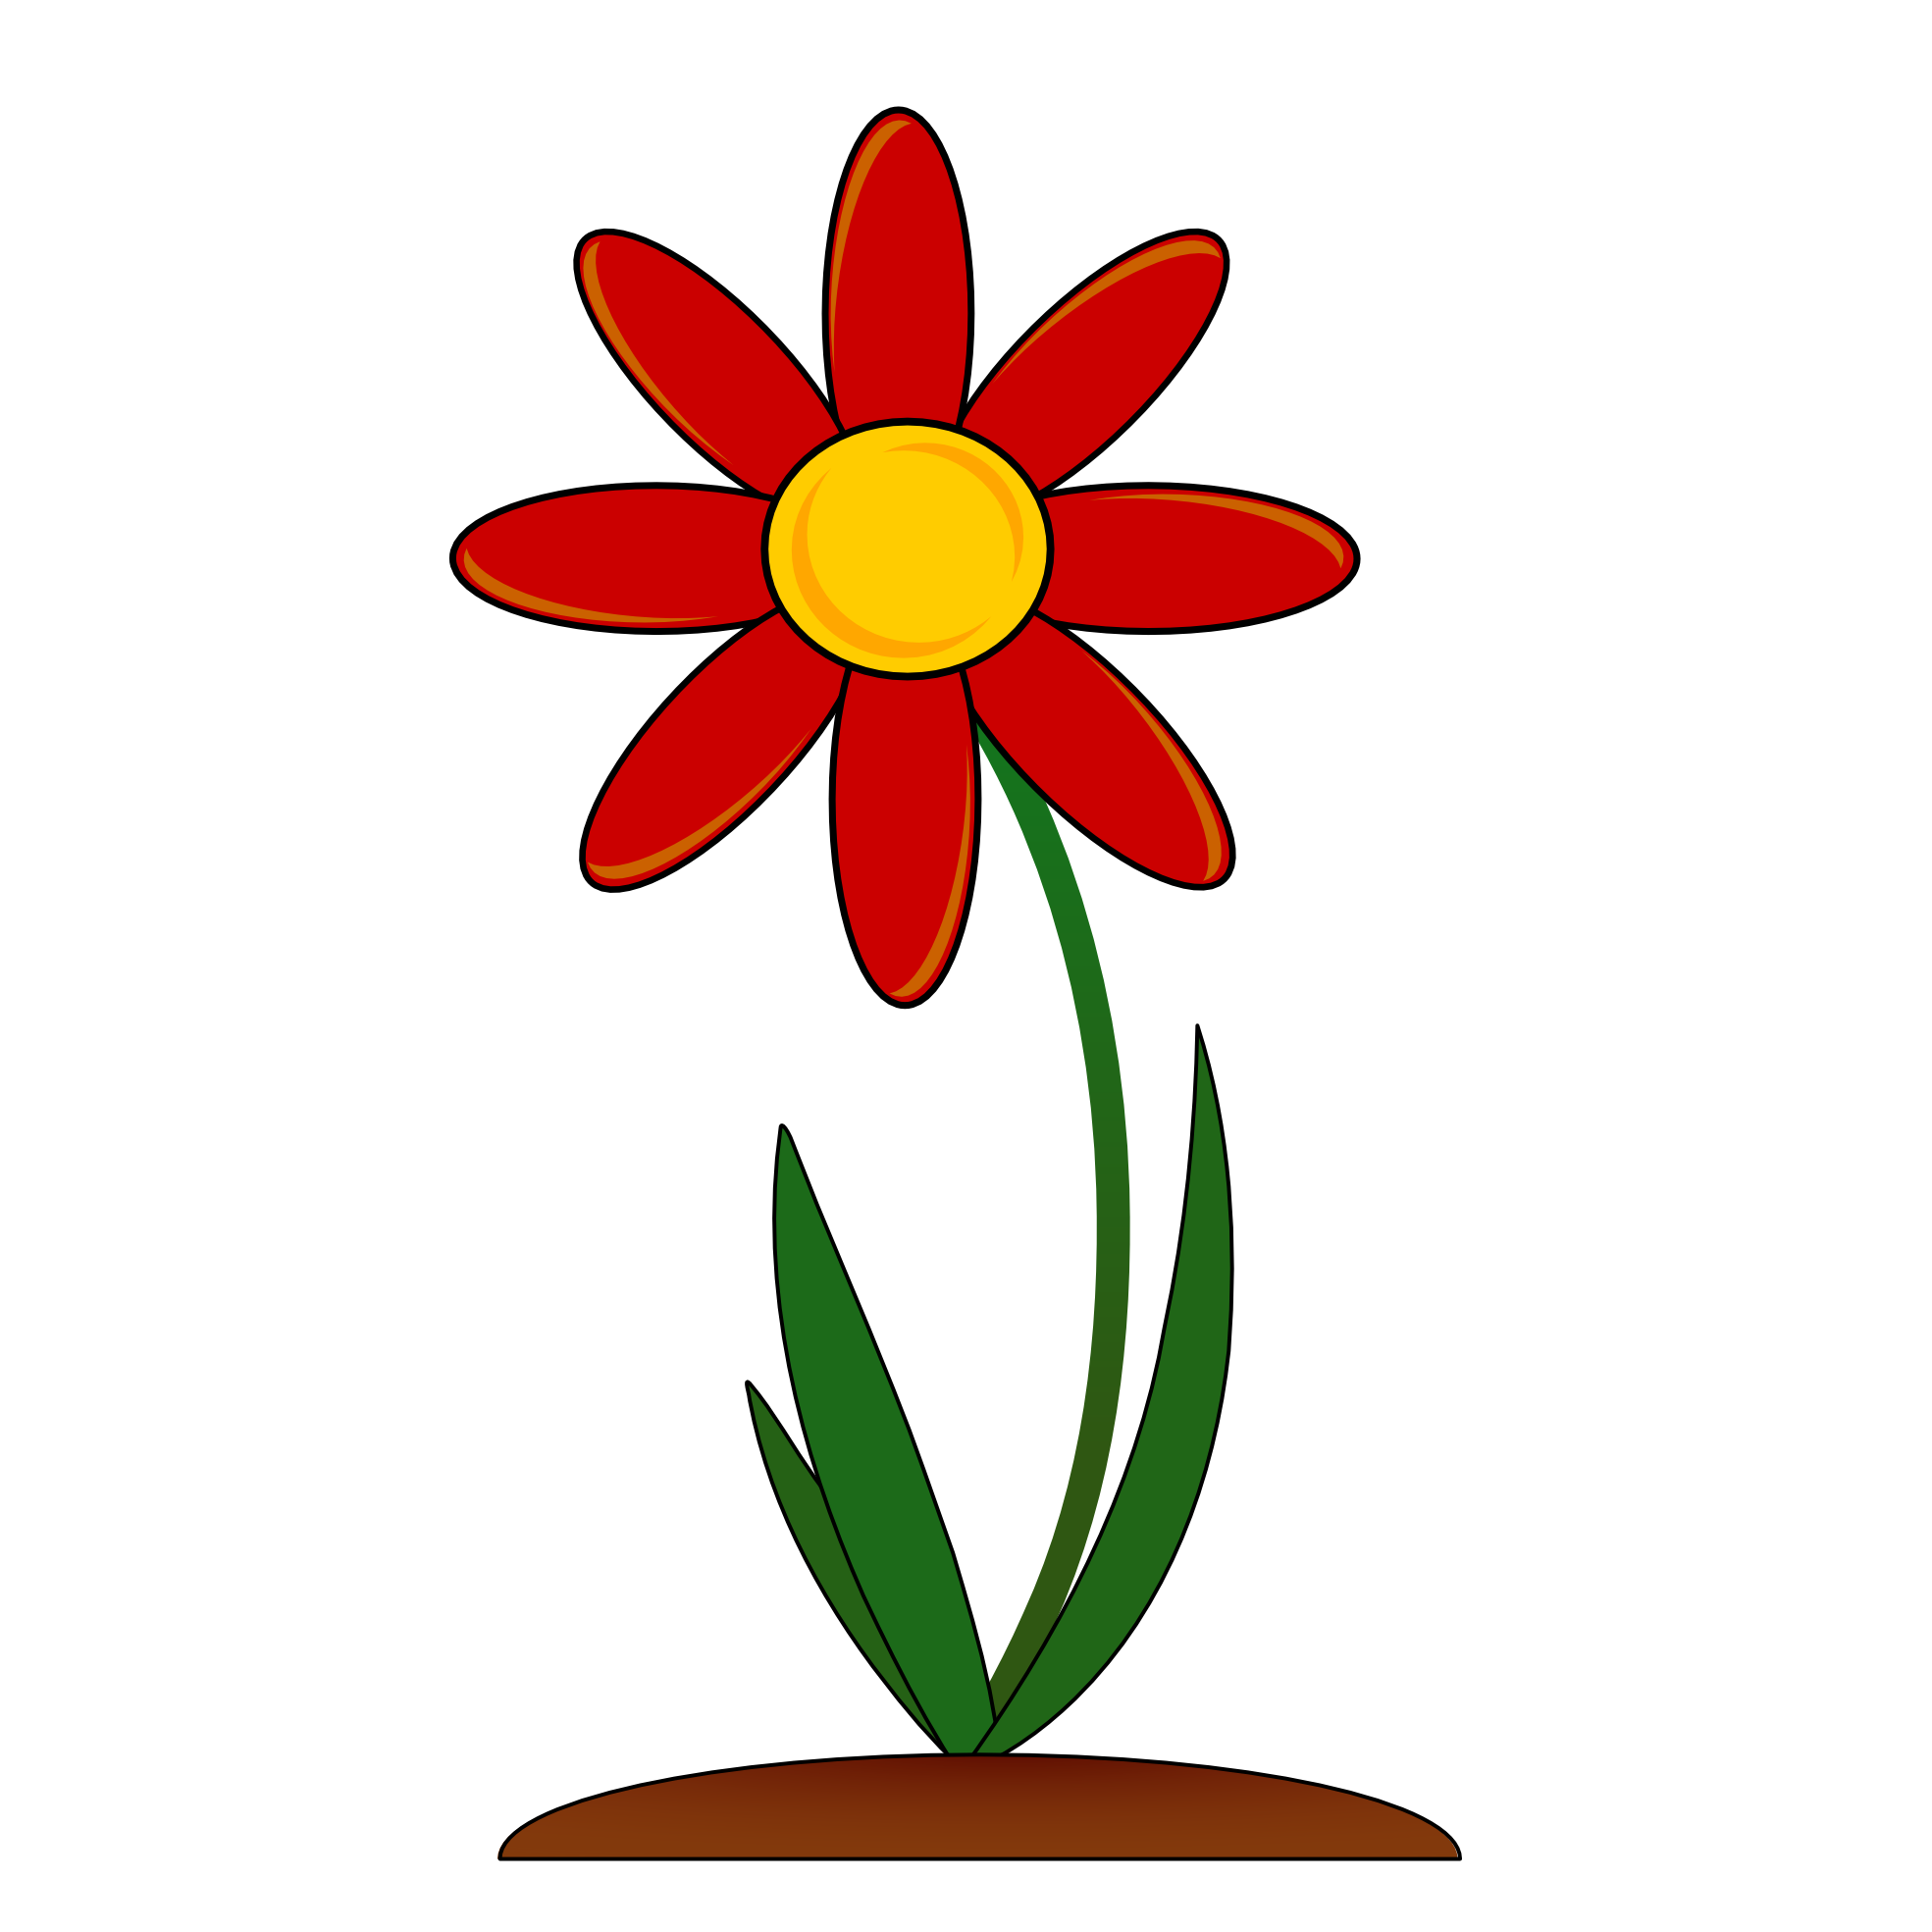 Heart clipart at getdrawings. Flower cartoon png